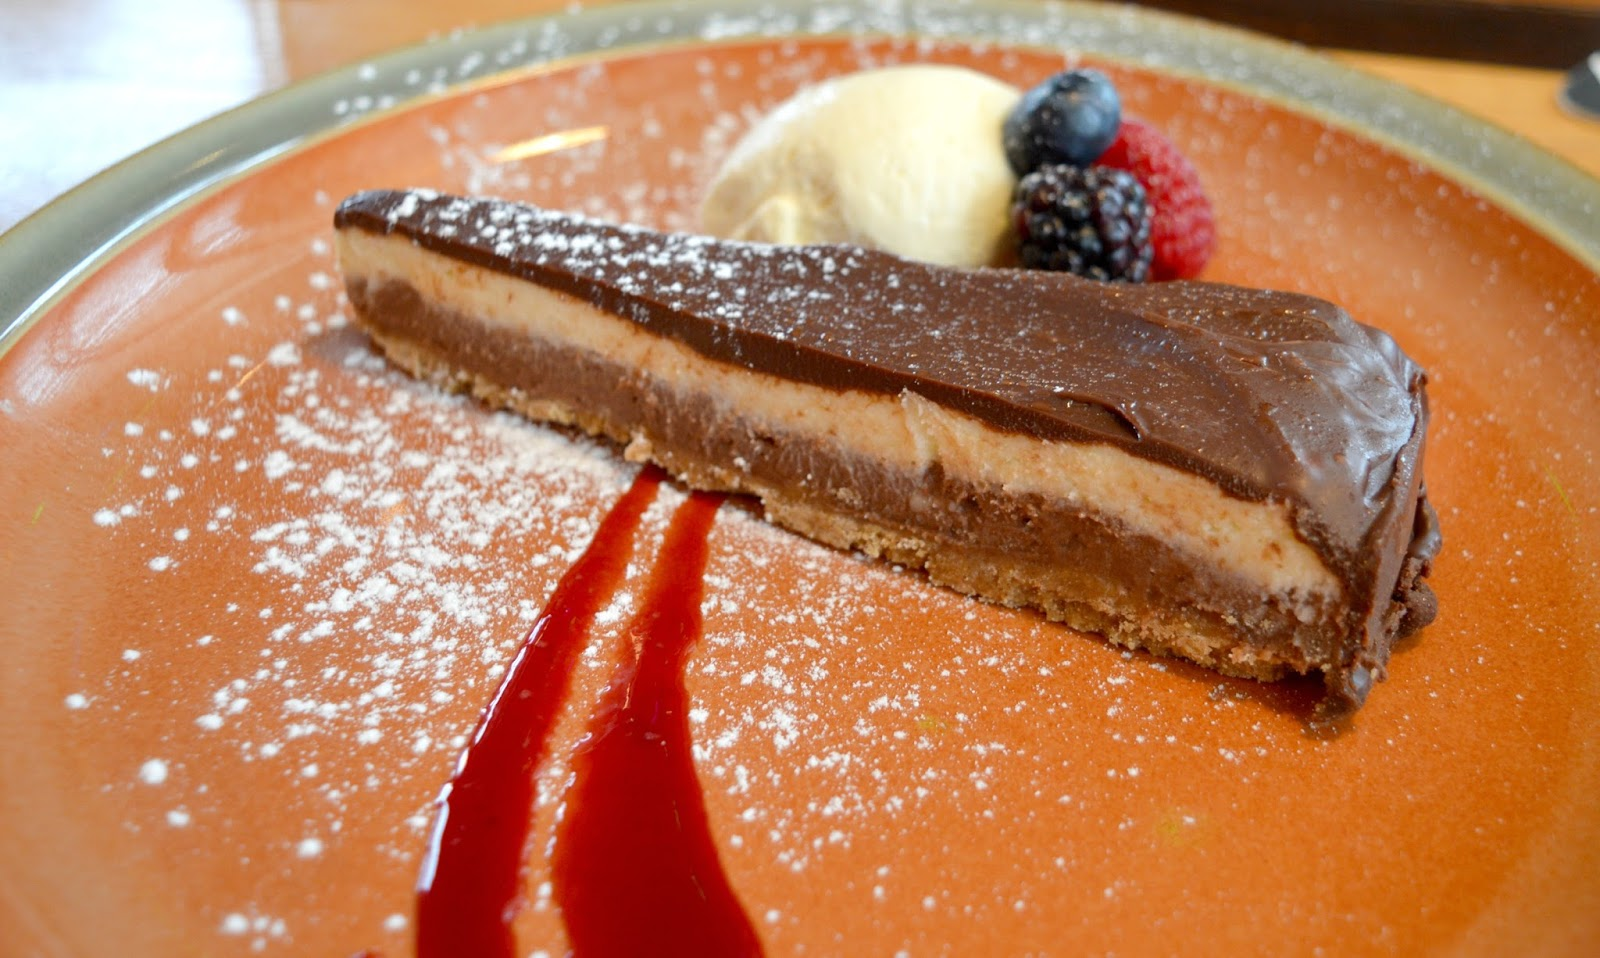 Sunday Lunch at Earl of Pitt Street  - Double Chocolate Cheesecake